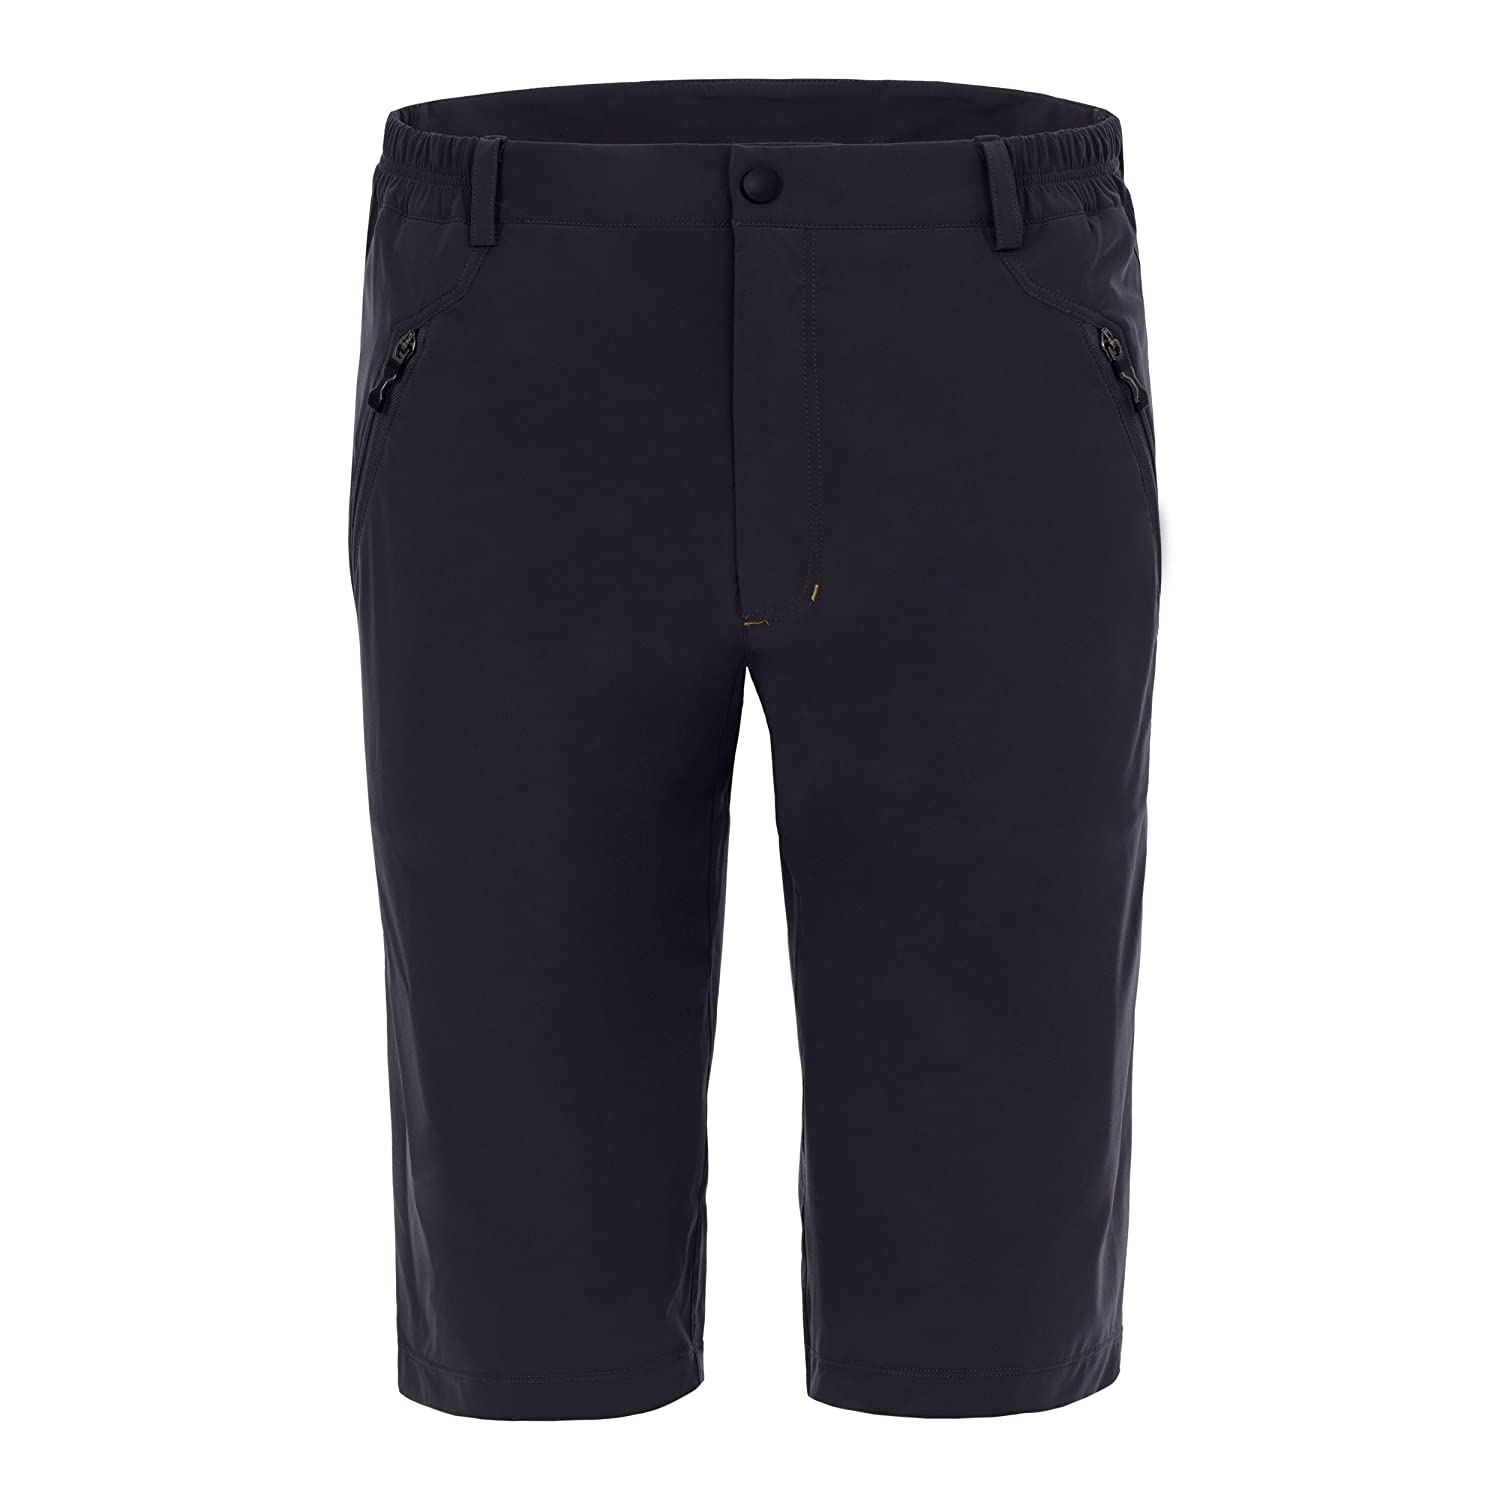 Jeep Herren Xp Outdoor-Shorts aus Funktionsgewebe